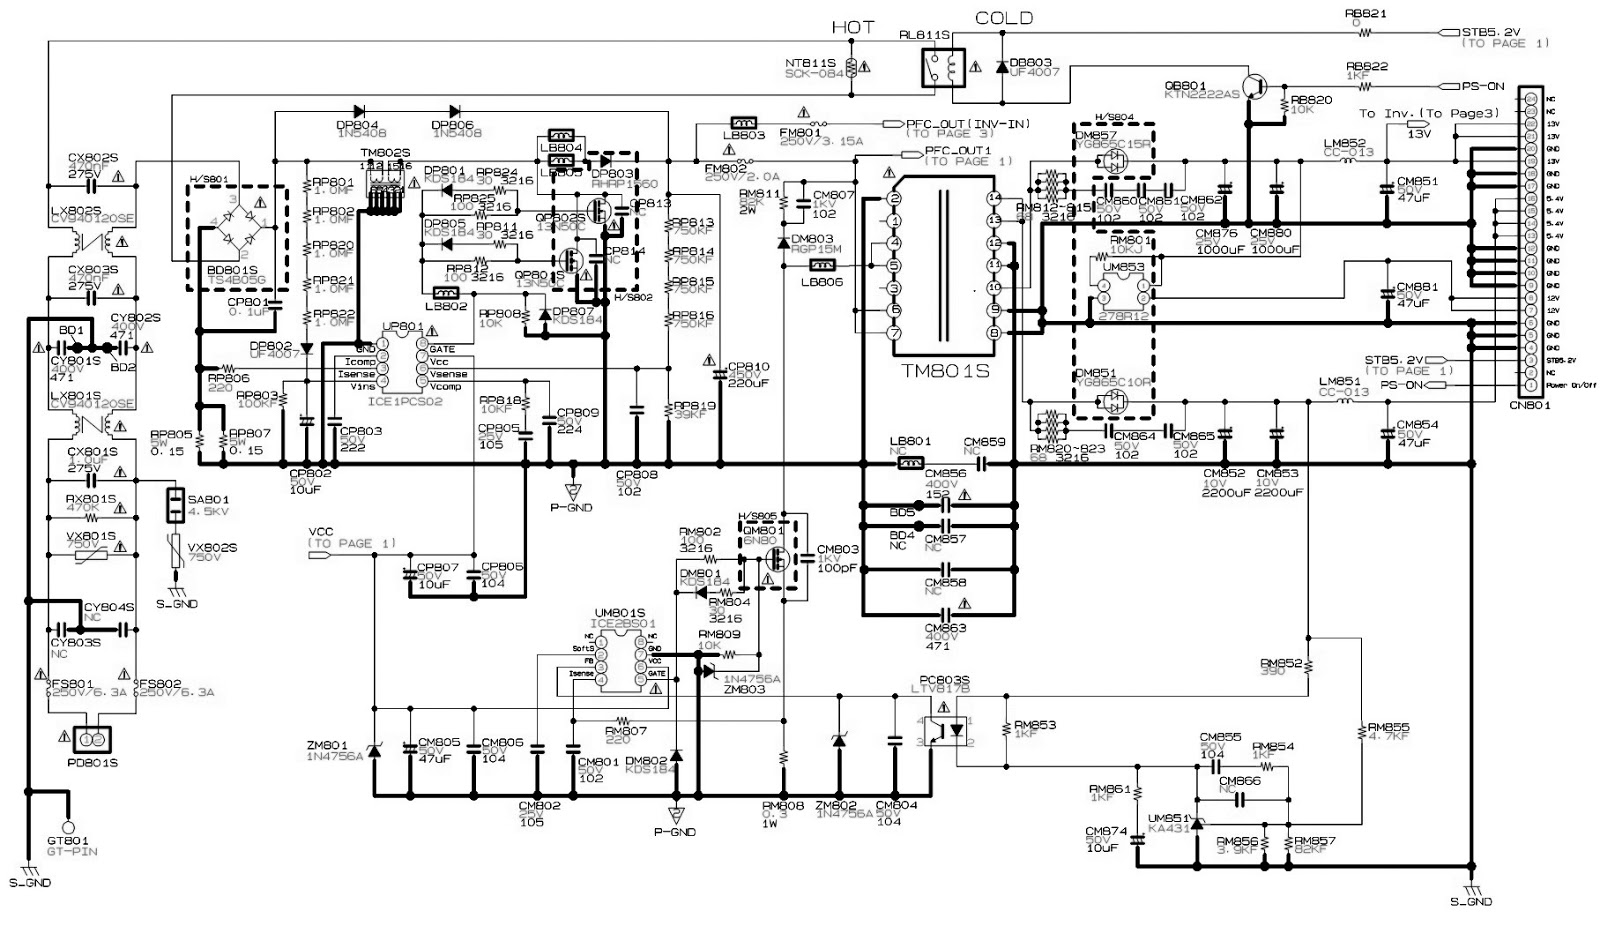 Vizio Tv Wiring Diagram Data Schema Diagrams Lcd Schematic Rh Ogmconsulting Co And Dvd Player To Cable